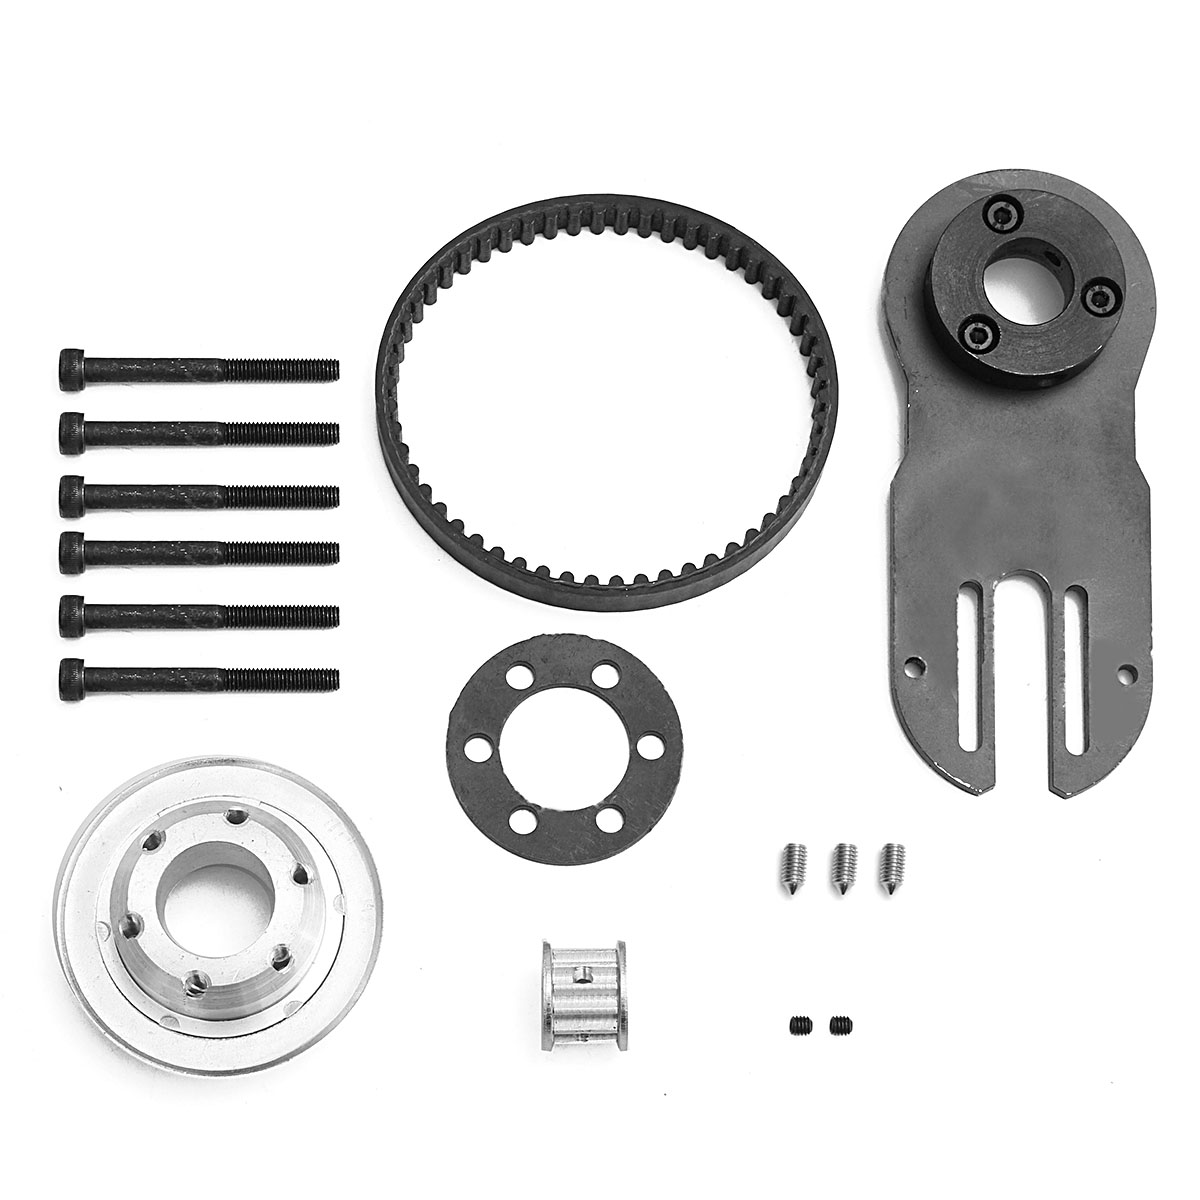 Mayitr Electric Skateboard Parts Pulleys Motor Mount Kit Tool for 83/90/97mm Wheels Skate Board Accessories